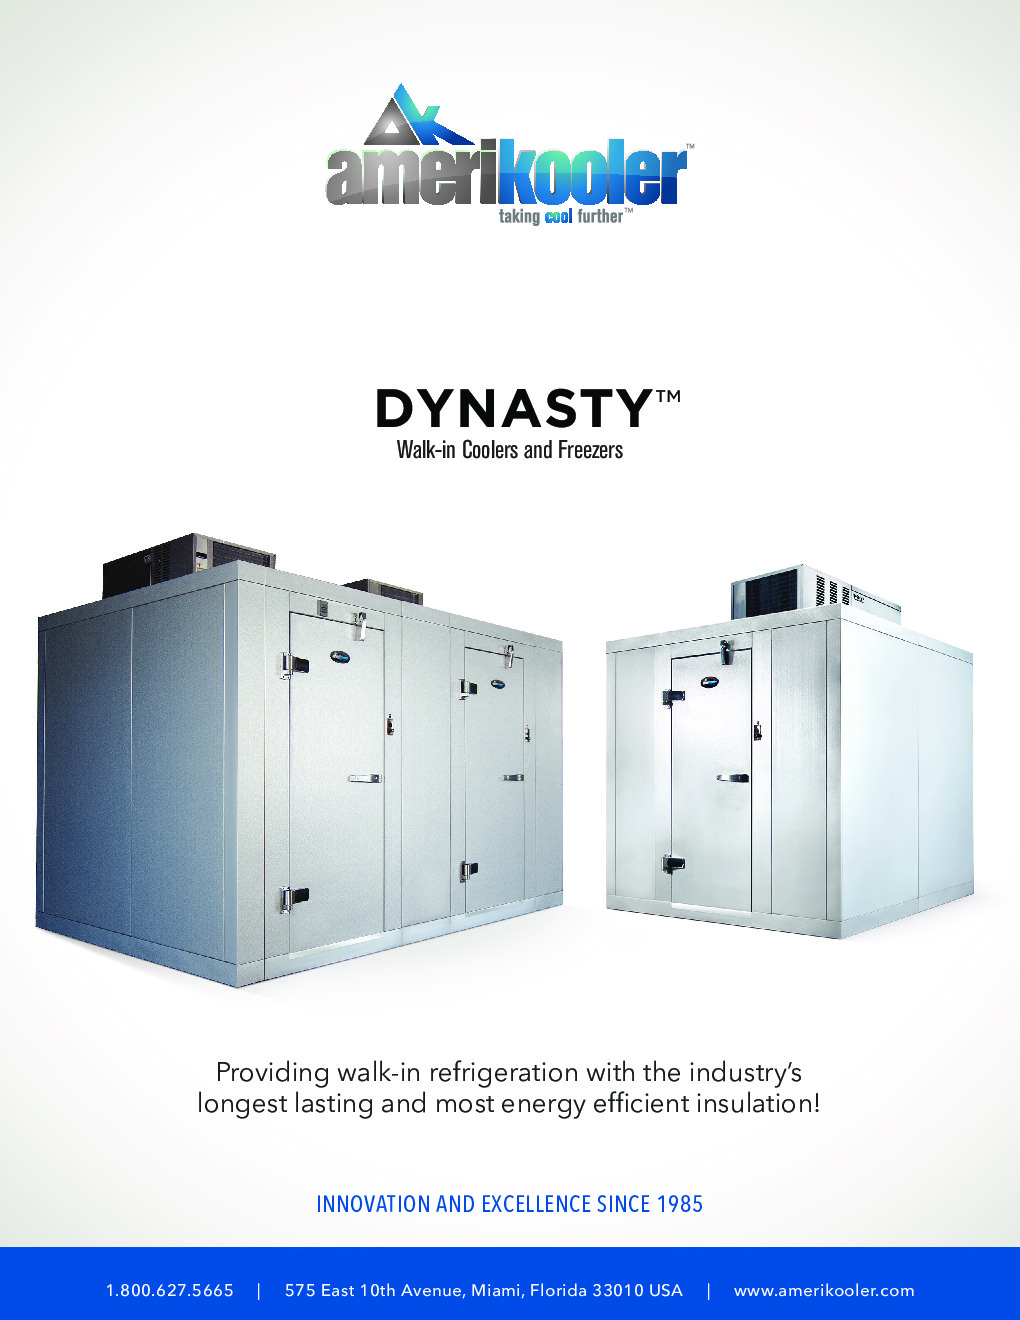 AmeriKooler DW091577N-7/8-RM 9' X 15' Walk-In Cooler, 8' L Cooler without Floor and 7' L Freezer, Remote